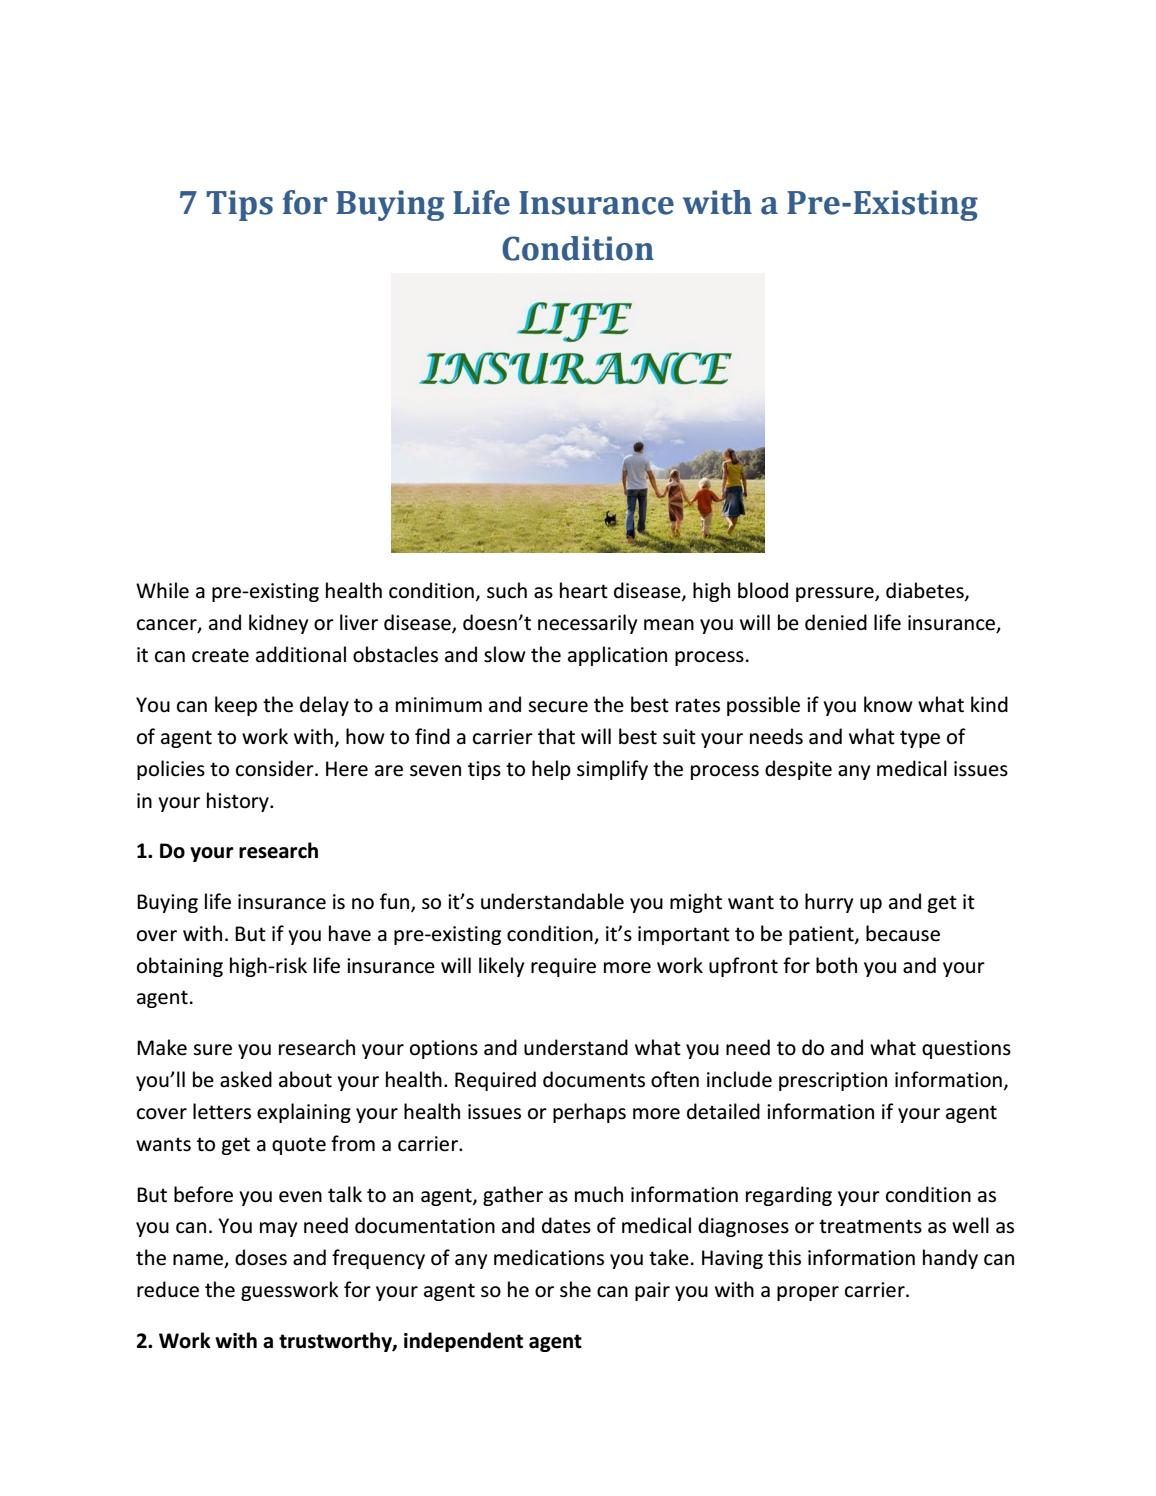 7 Tips for Buying Life Insurance with a Pre-Existing ...